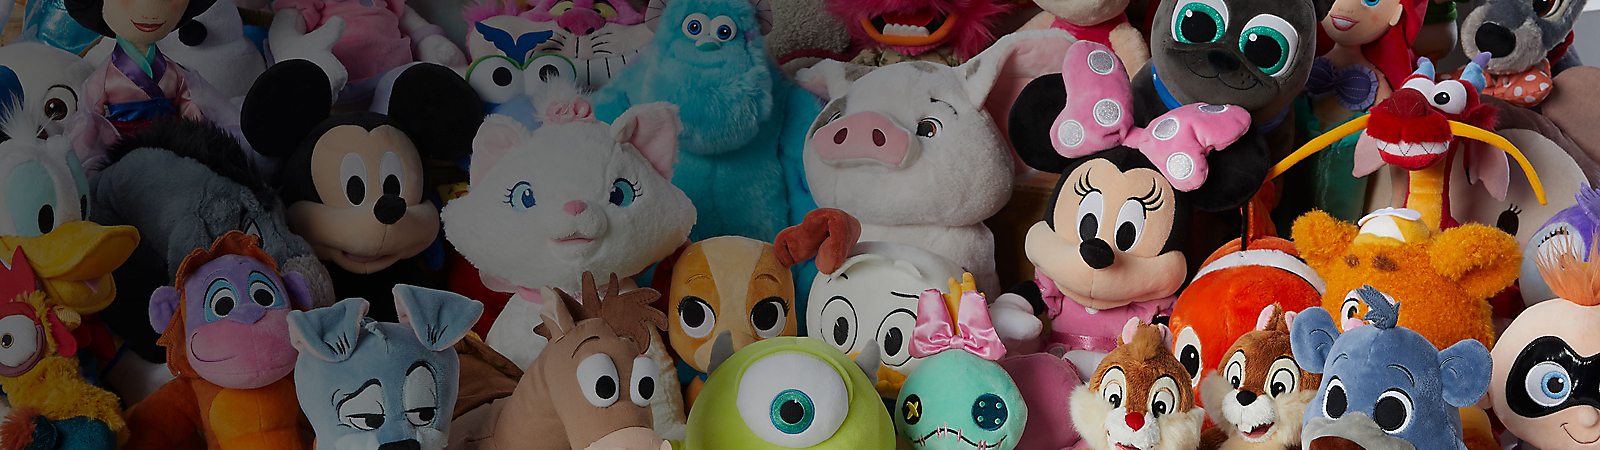 Plush & Stuffed Animals